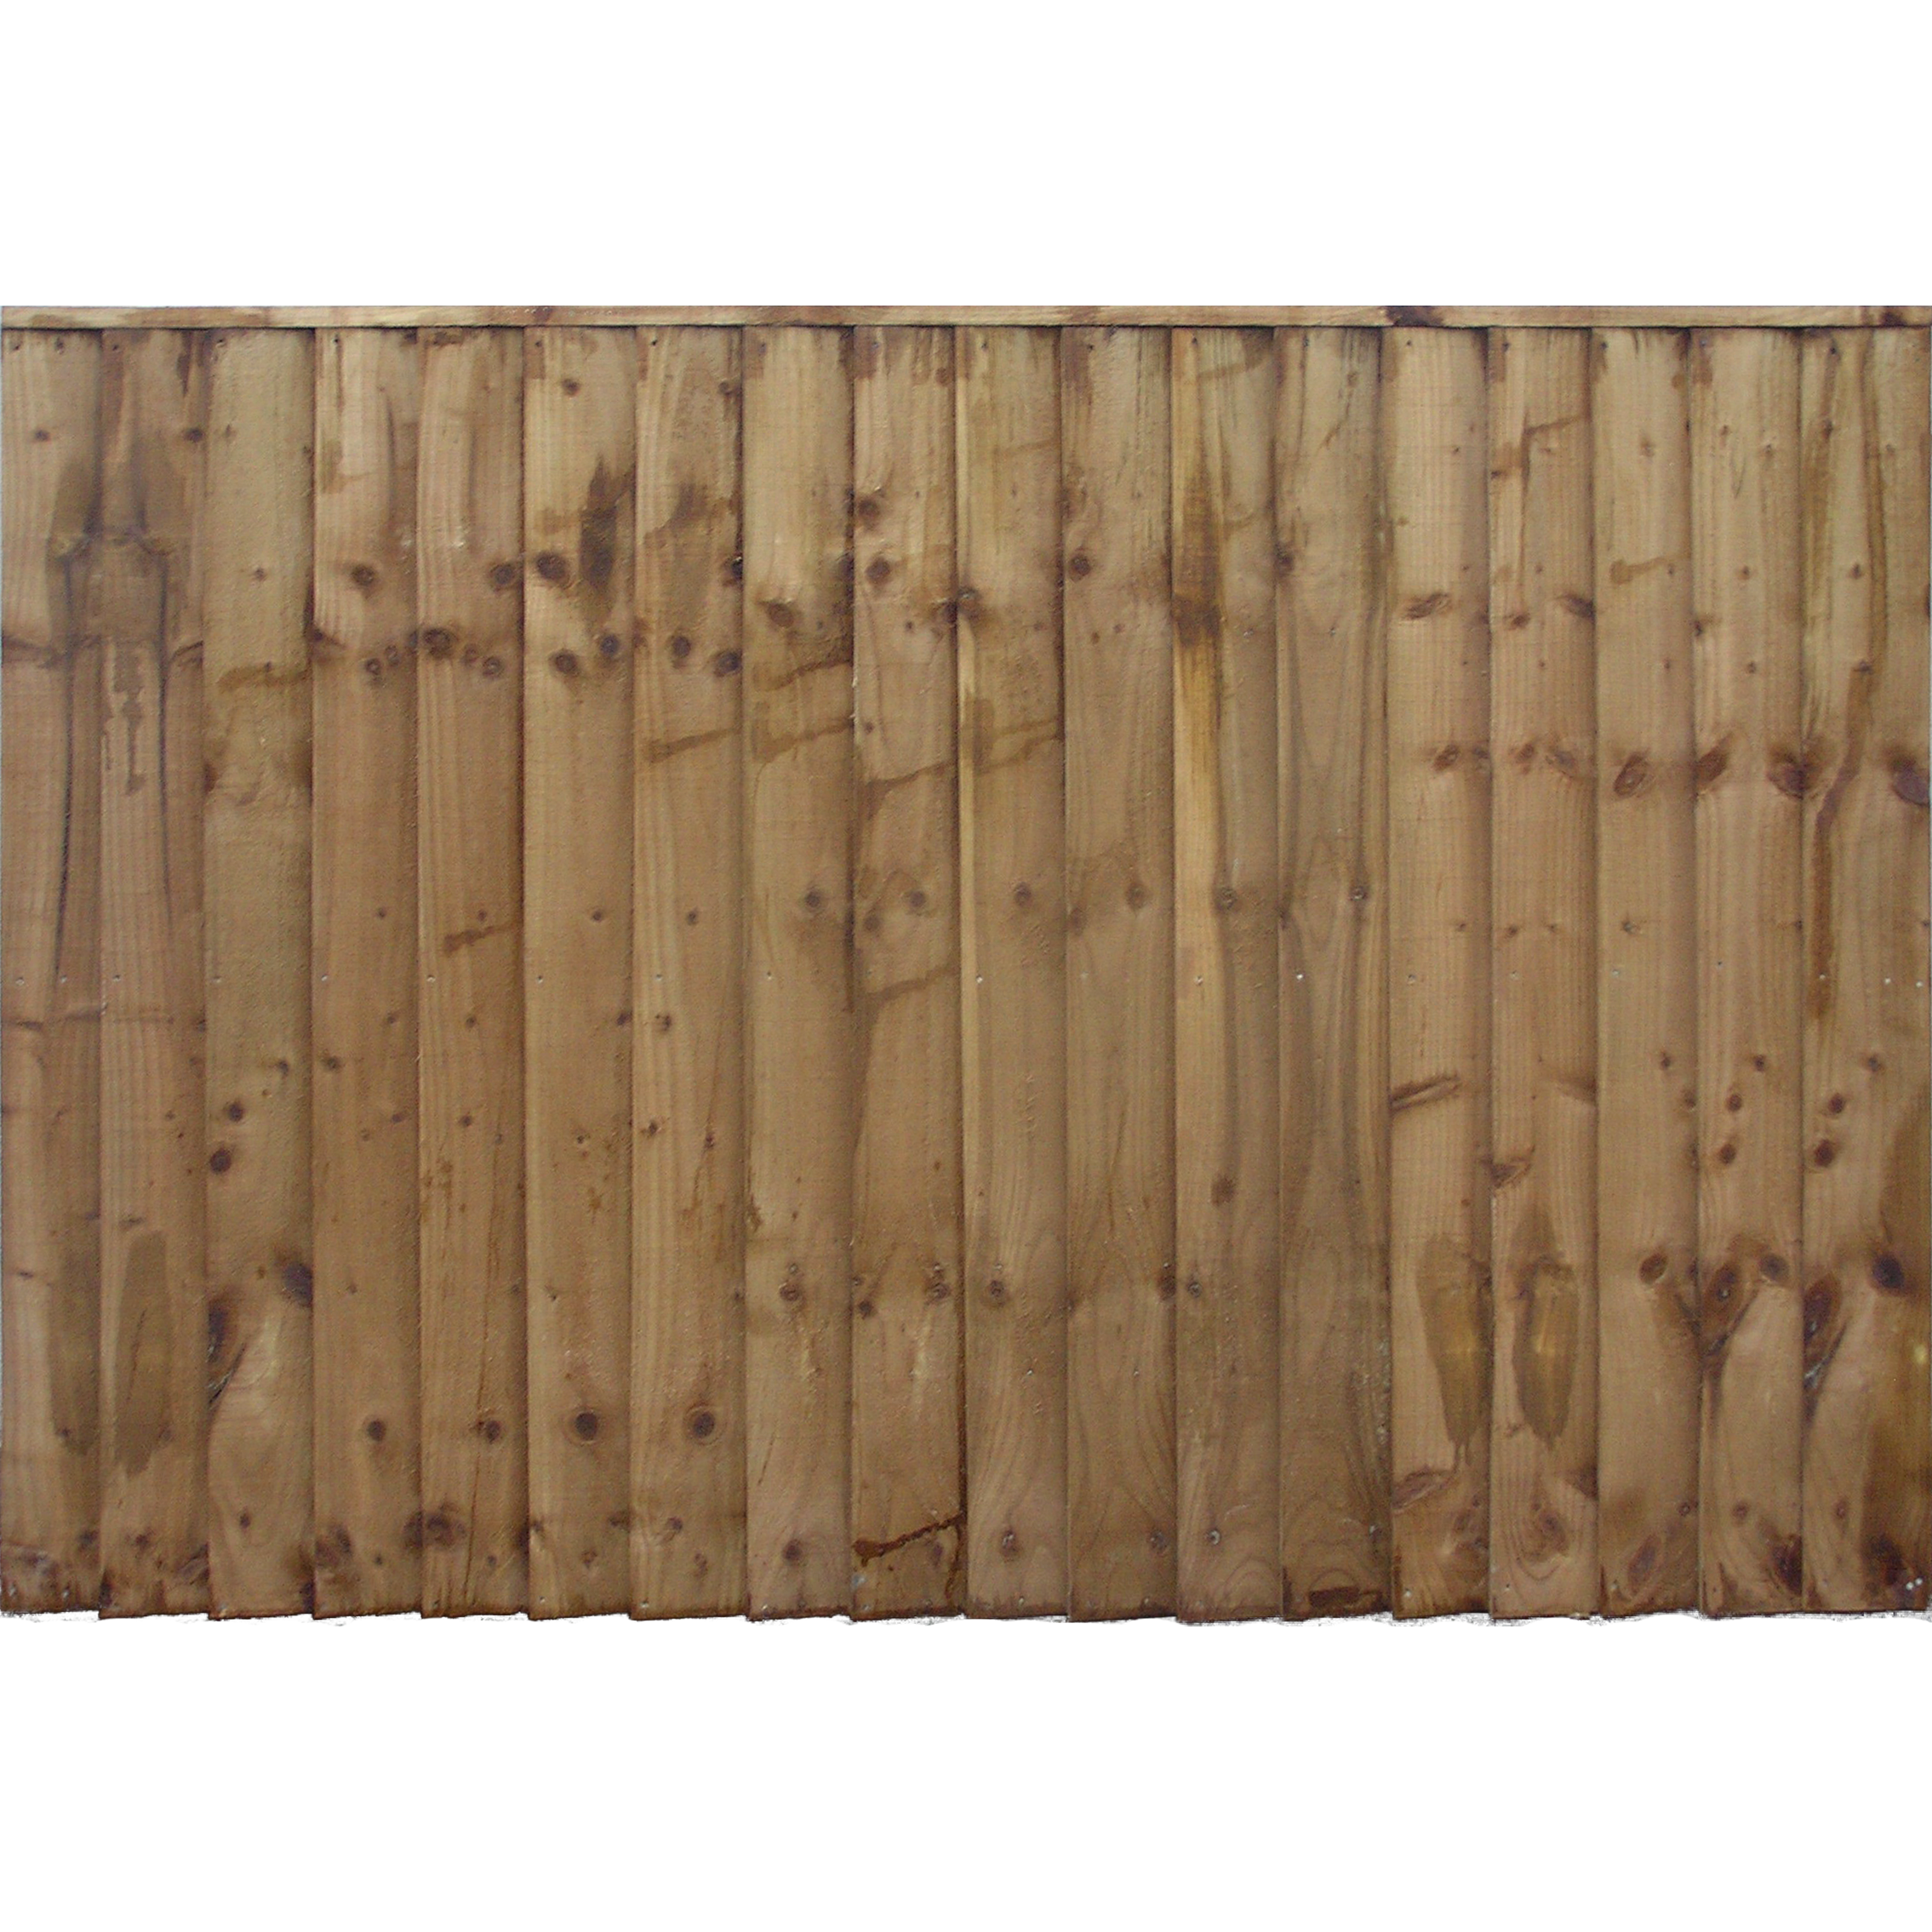 Fencing clipart fence panel. Flat top panels derby